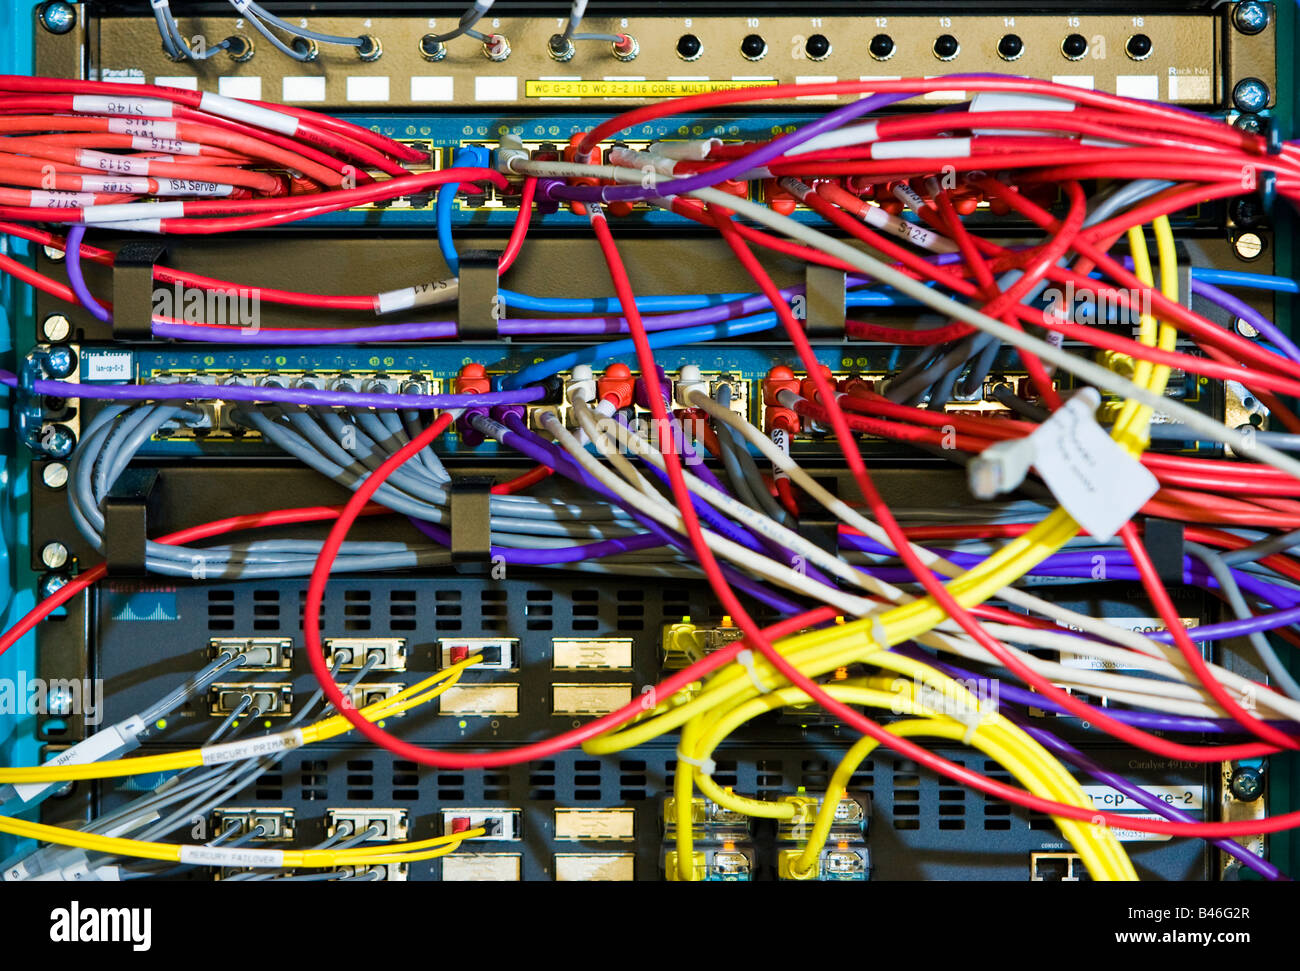 hight resolution of computer cables and ethernet network cables in a server rack stock image